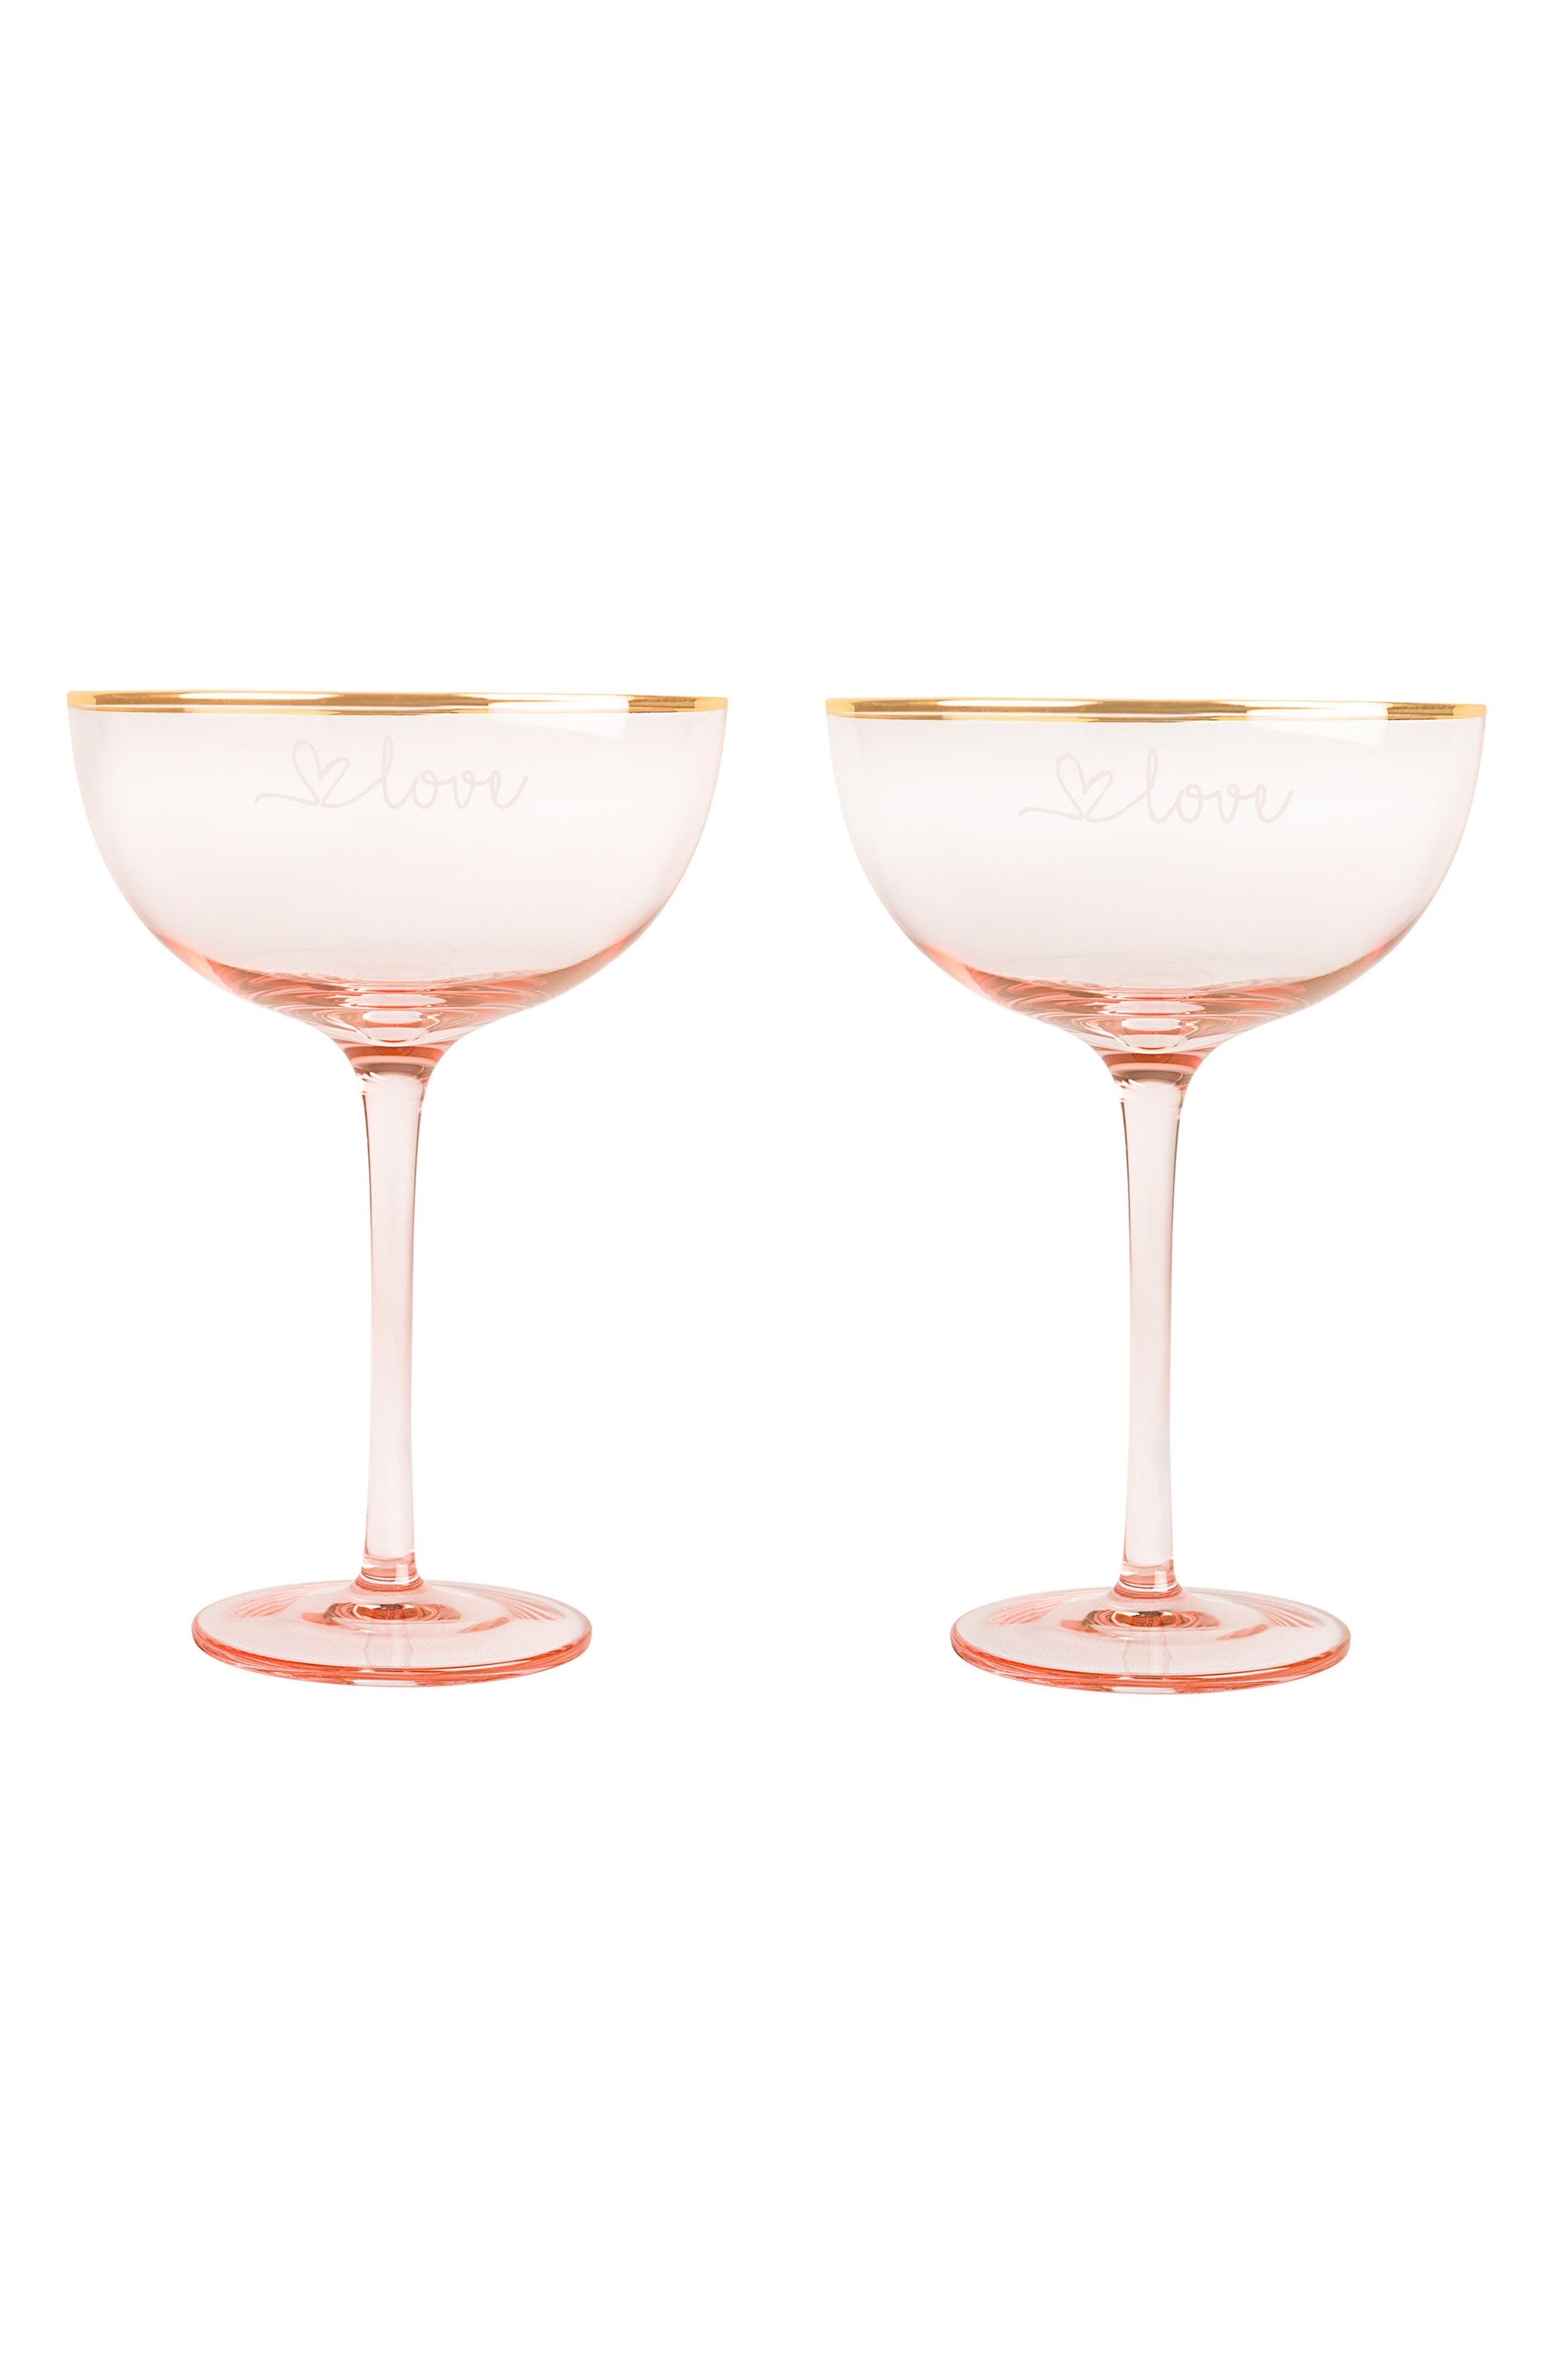 Love Set of 2 Champagne Coupes,                         Main,                         color, Blush